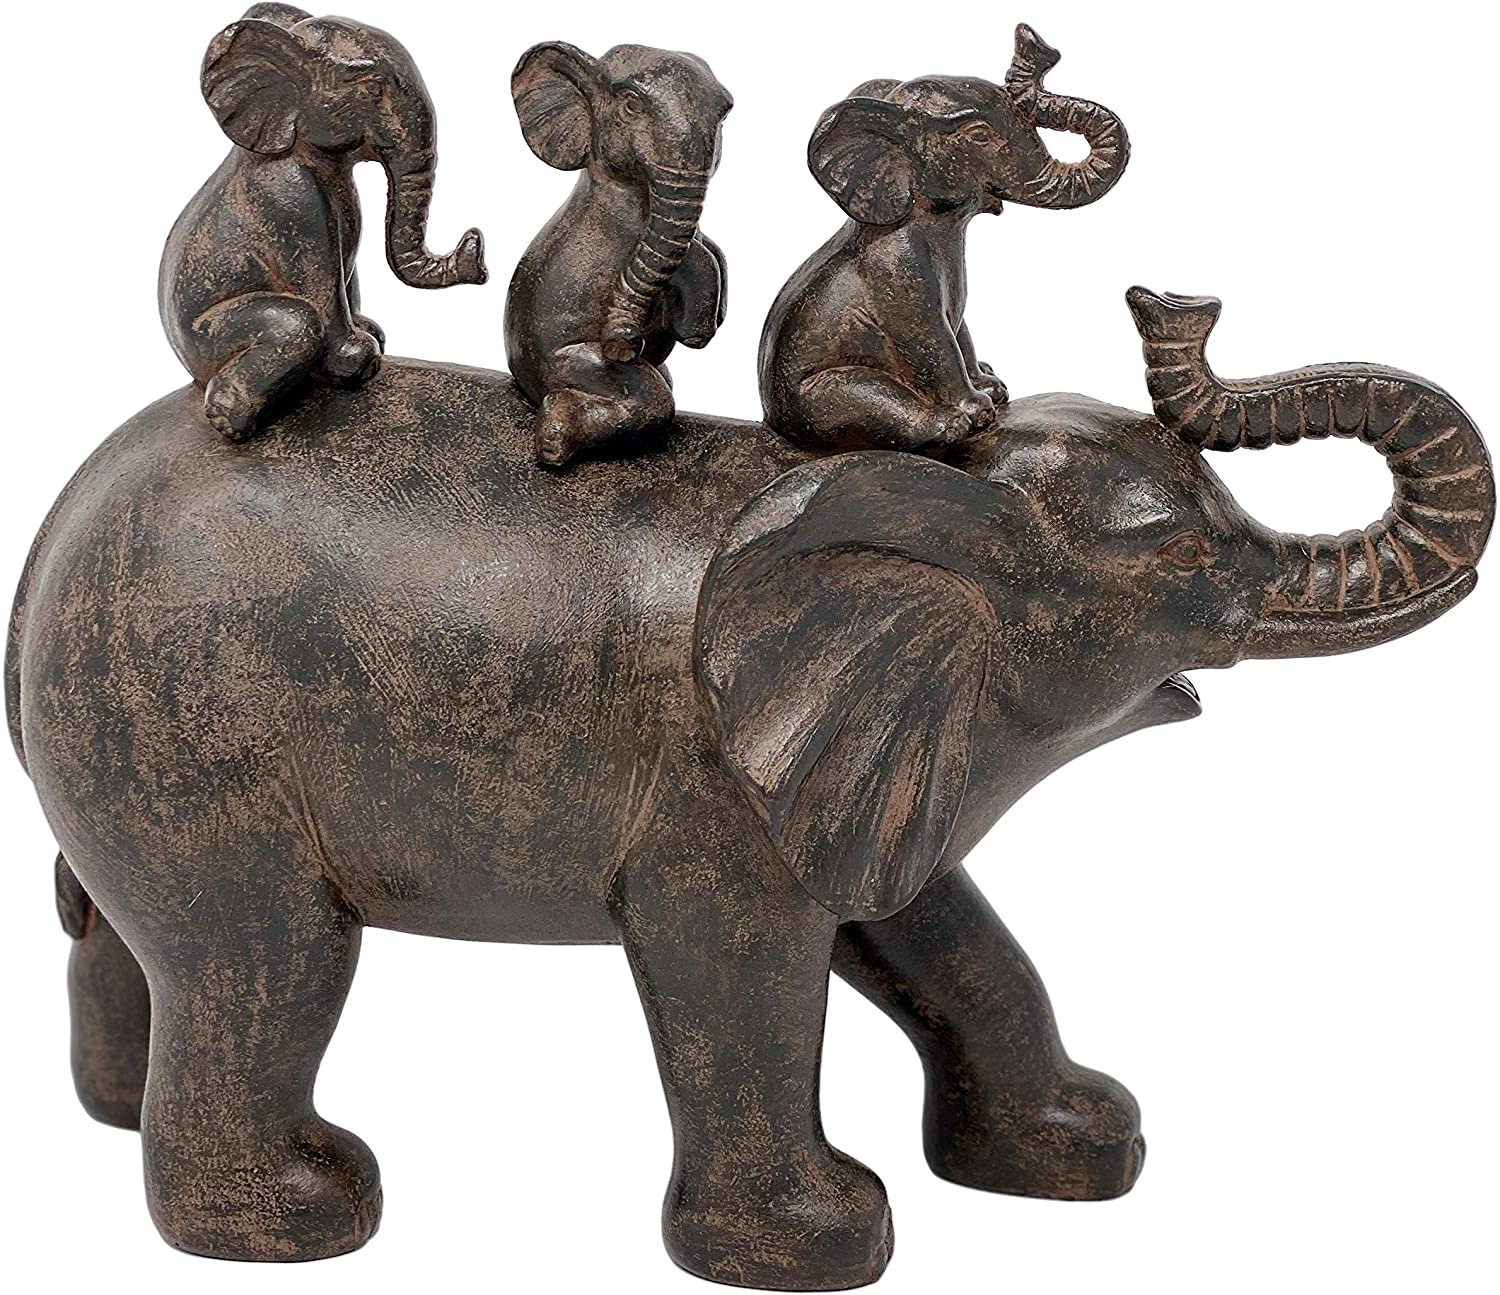 "Nature's Mark 10"" H 3 Baby Elephants Riding an Elephant Resin Statue Figurine Home Decorative Accent Decor"